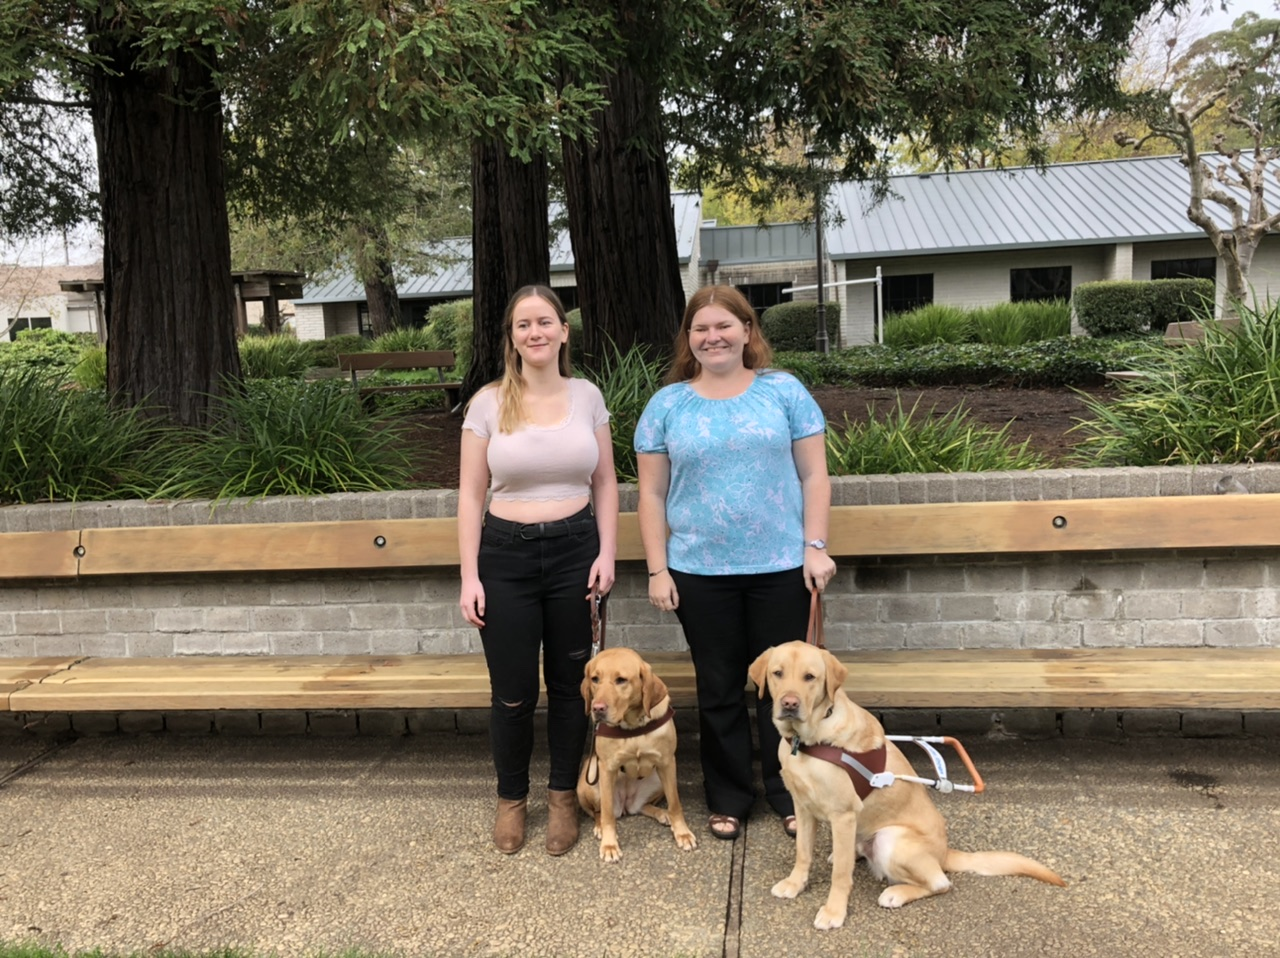 Jenna Faris and Heidi Springstroh stand side by side in front of a small grove of redwood trees with their yellow lab guide dogs. Jenna, left, wears a lacy white crop top, black skinny jeans, and brown boots. Heidi, right, wears a sparkly teal blouse, black jeans, and brown sandals. Both girls smile happily at the camera. The dogs sit to each girl's left, wearing their harnesses and gazing soulfully at the camera.